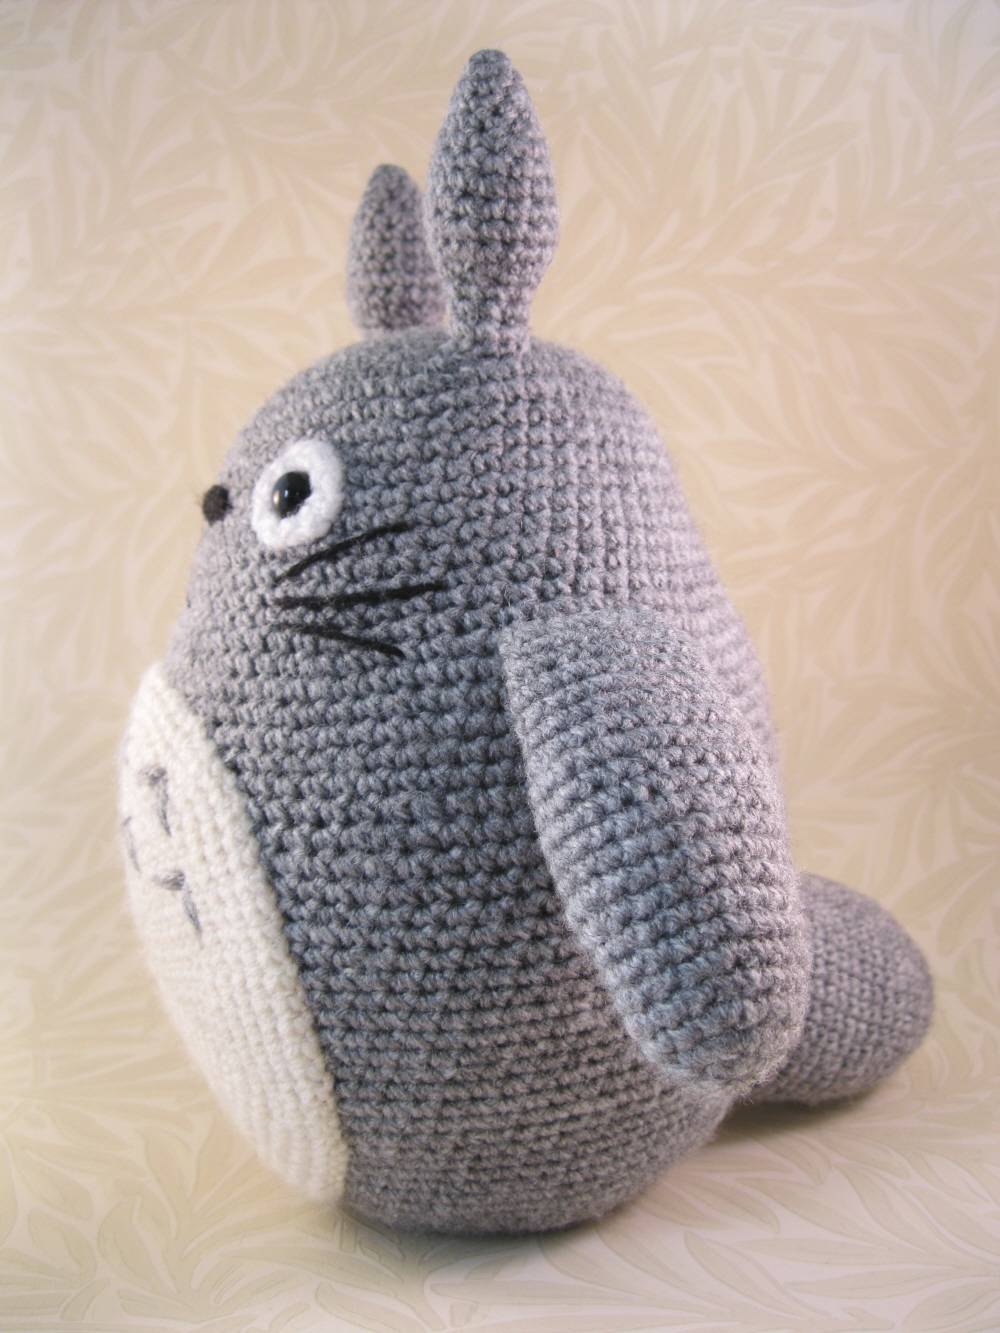 Free Knitting Pattern Totoro Toy : LucyRavenscar - Crochet Creatures: All the Totoros!